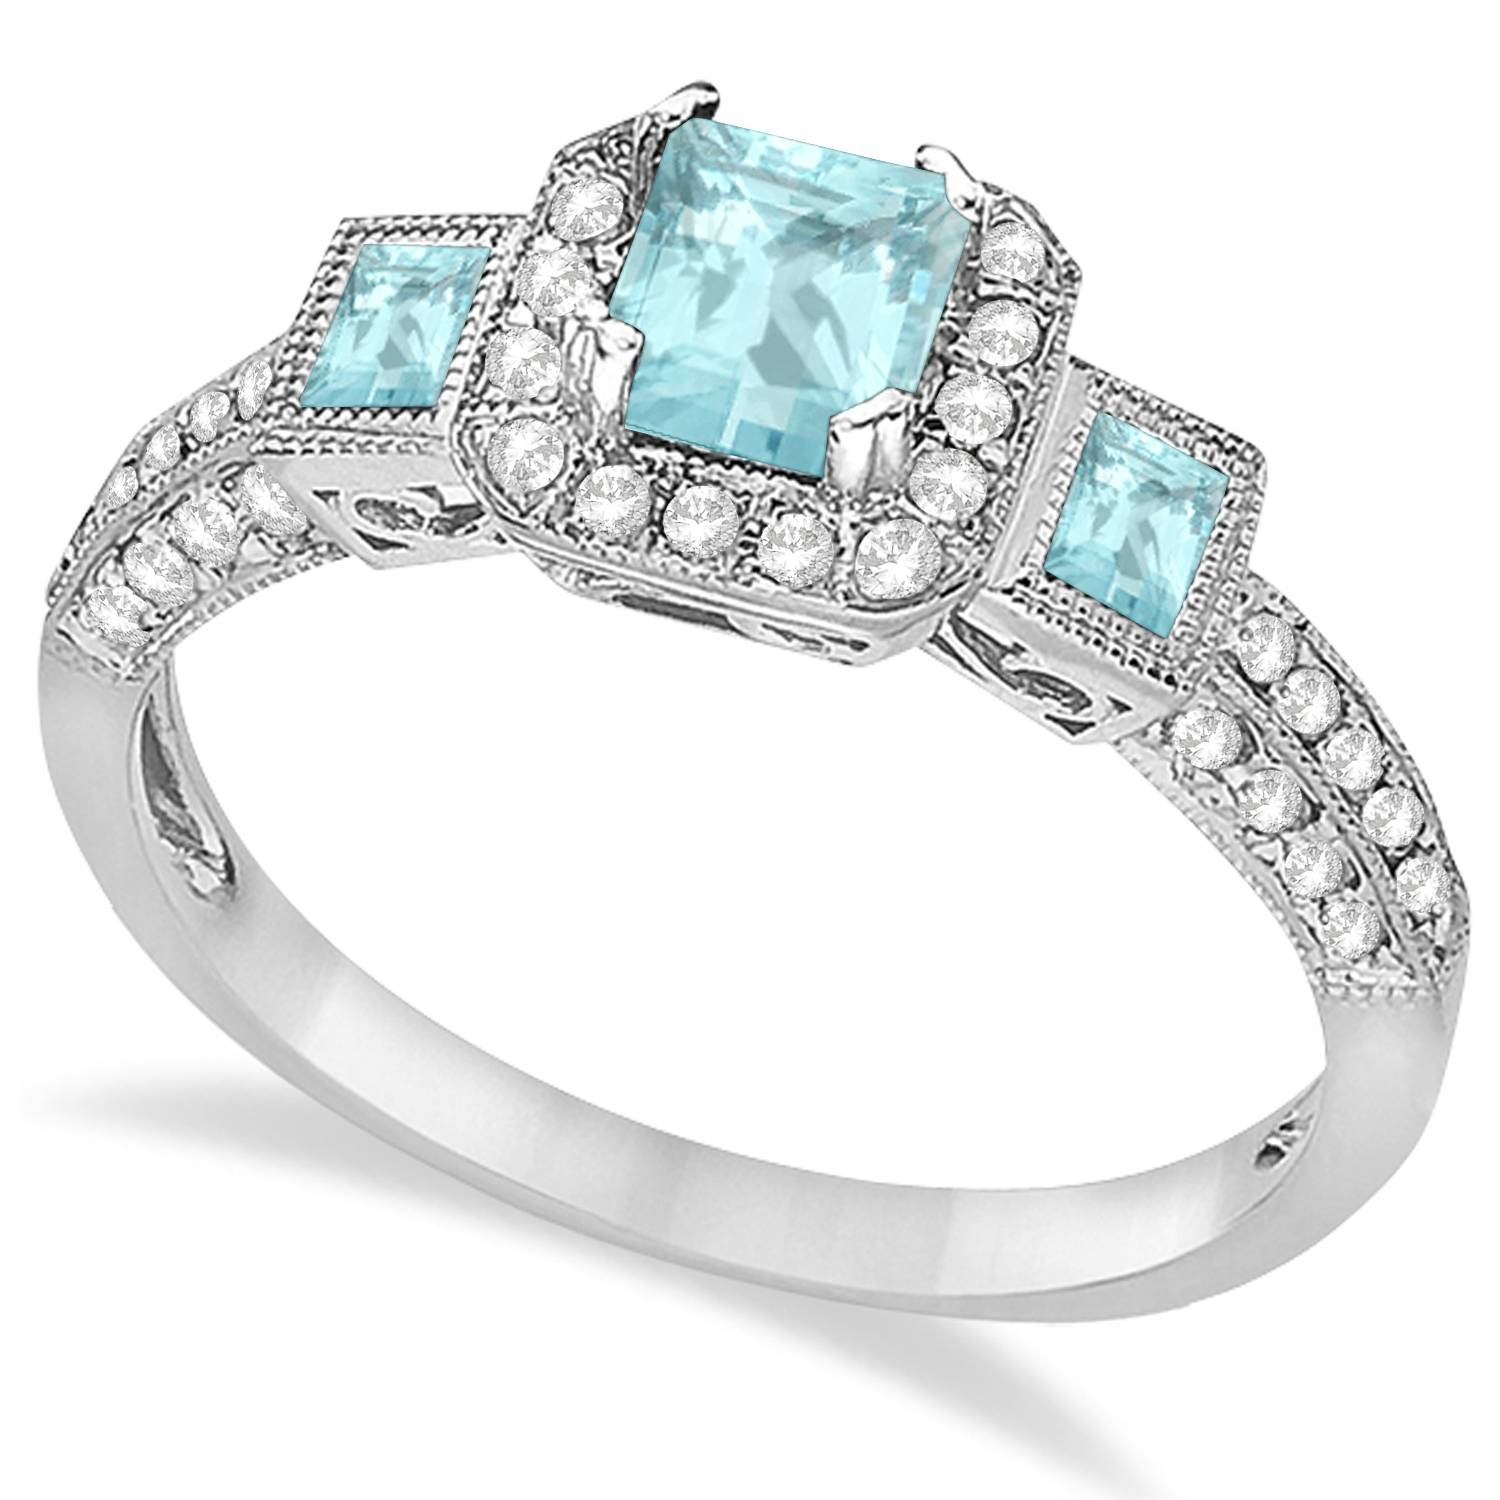 Aquamarine & Diamond Engagement Ring 14k White Gold (View 5 of 15)